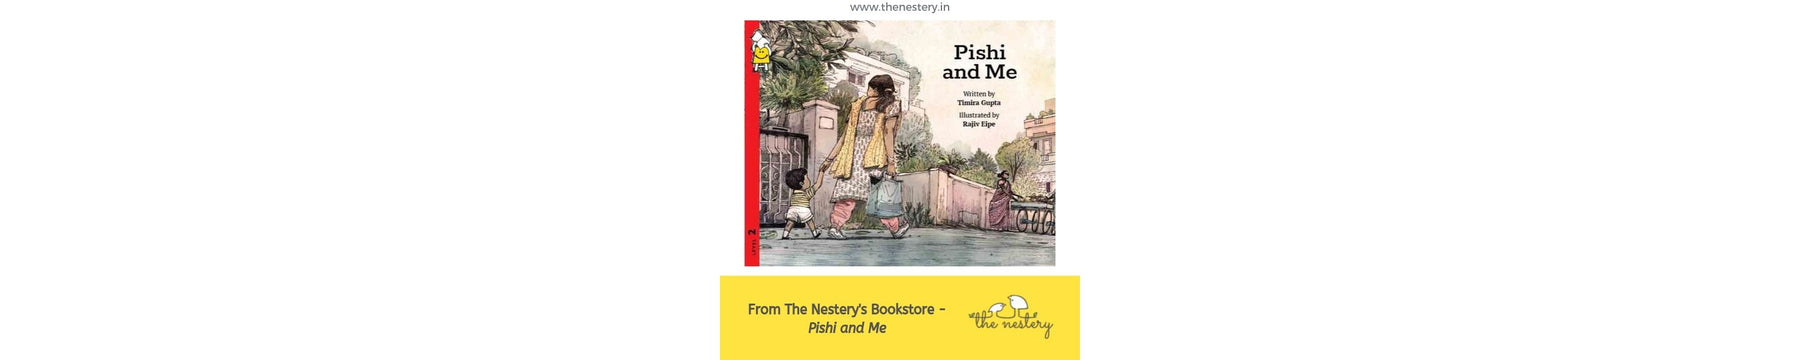 Book Review - Pishi and Me